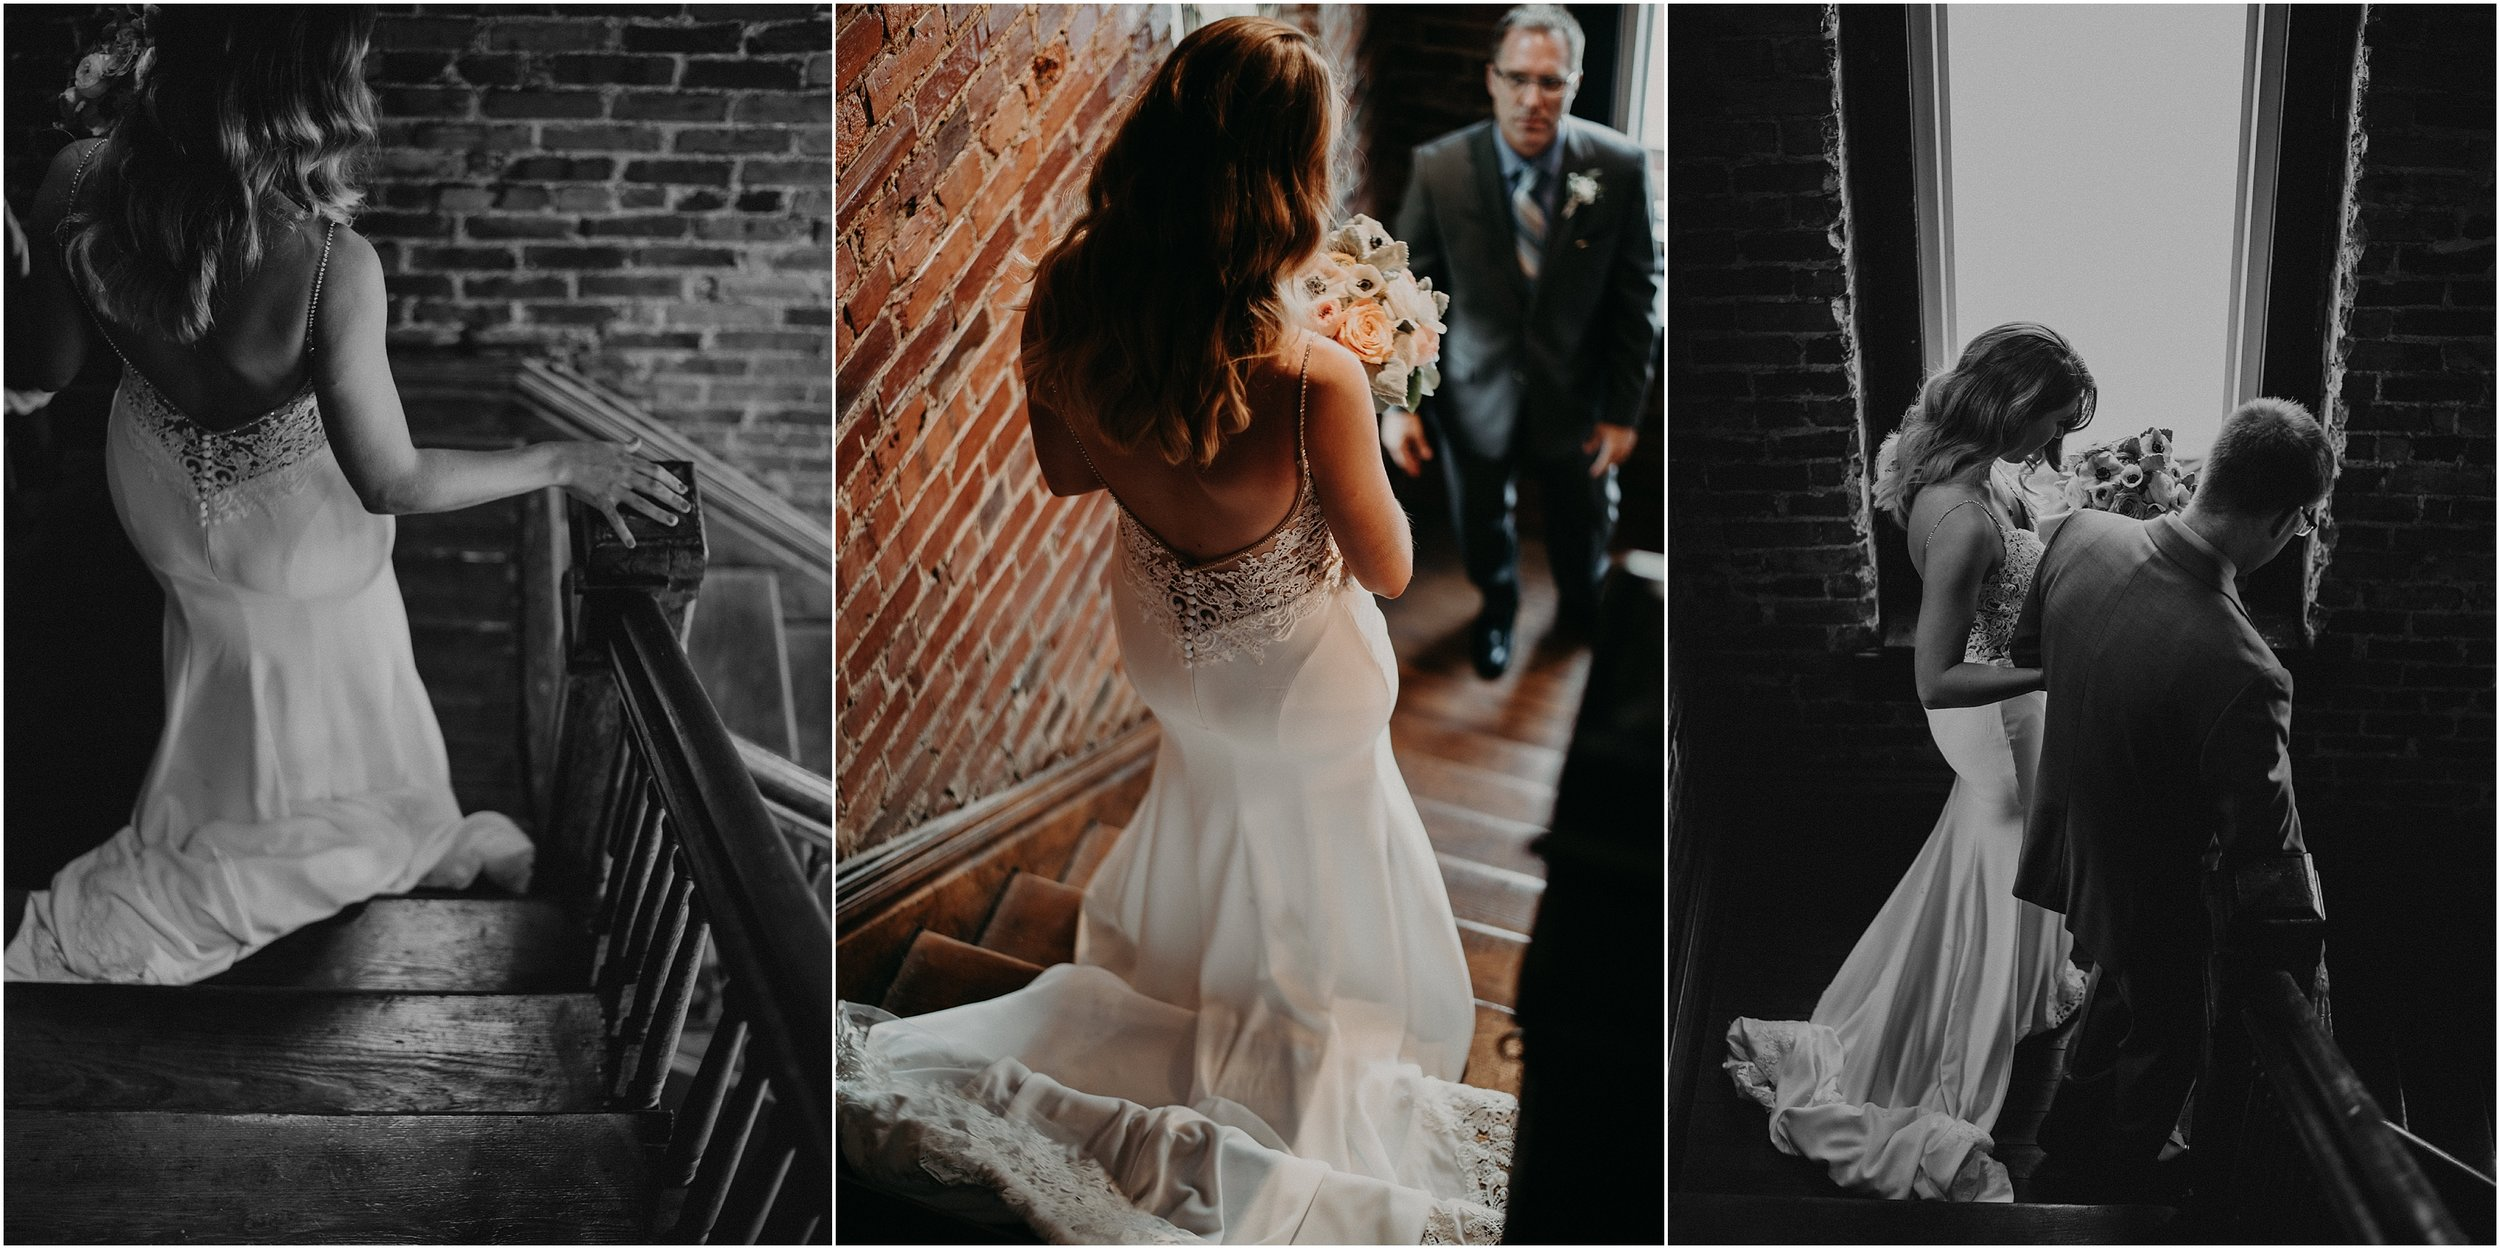 The bride walks down the stairs to her father before her grand ceremony entrance